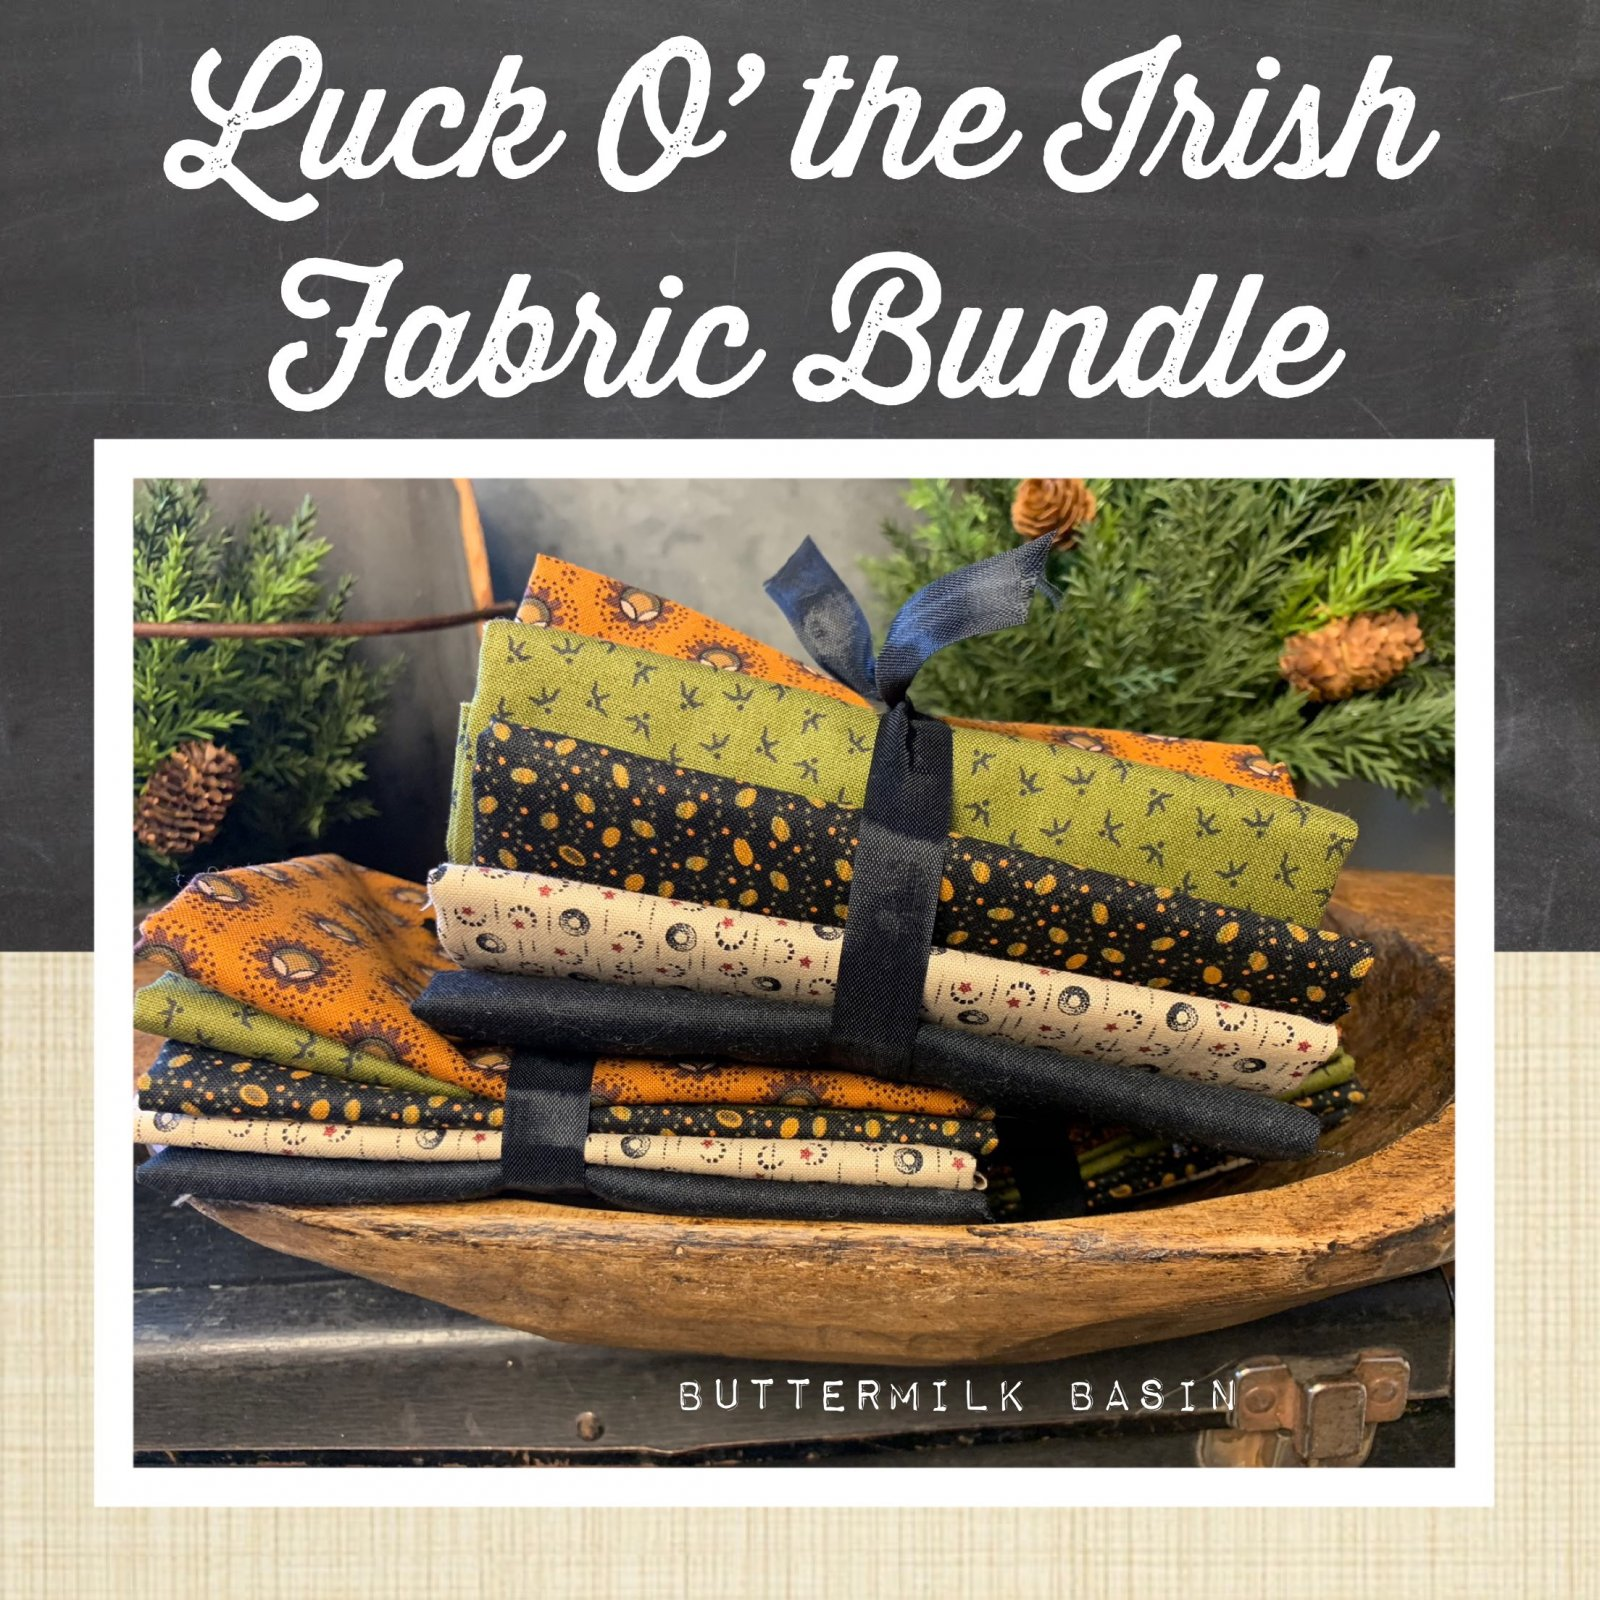 Luck O the Irish Fabric Bundle